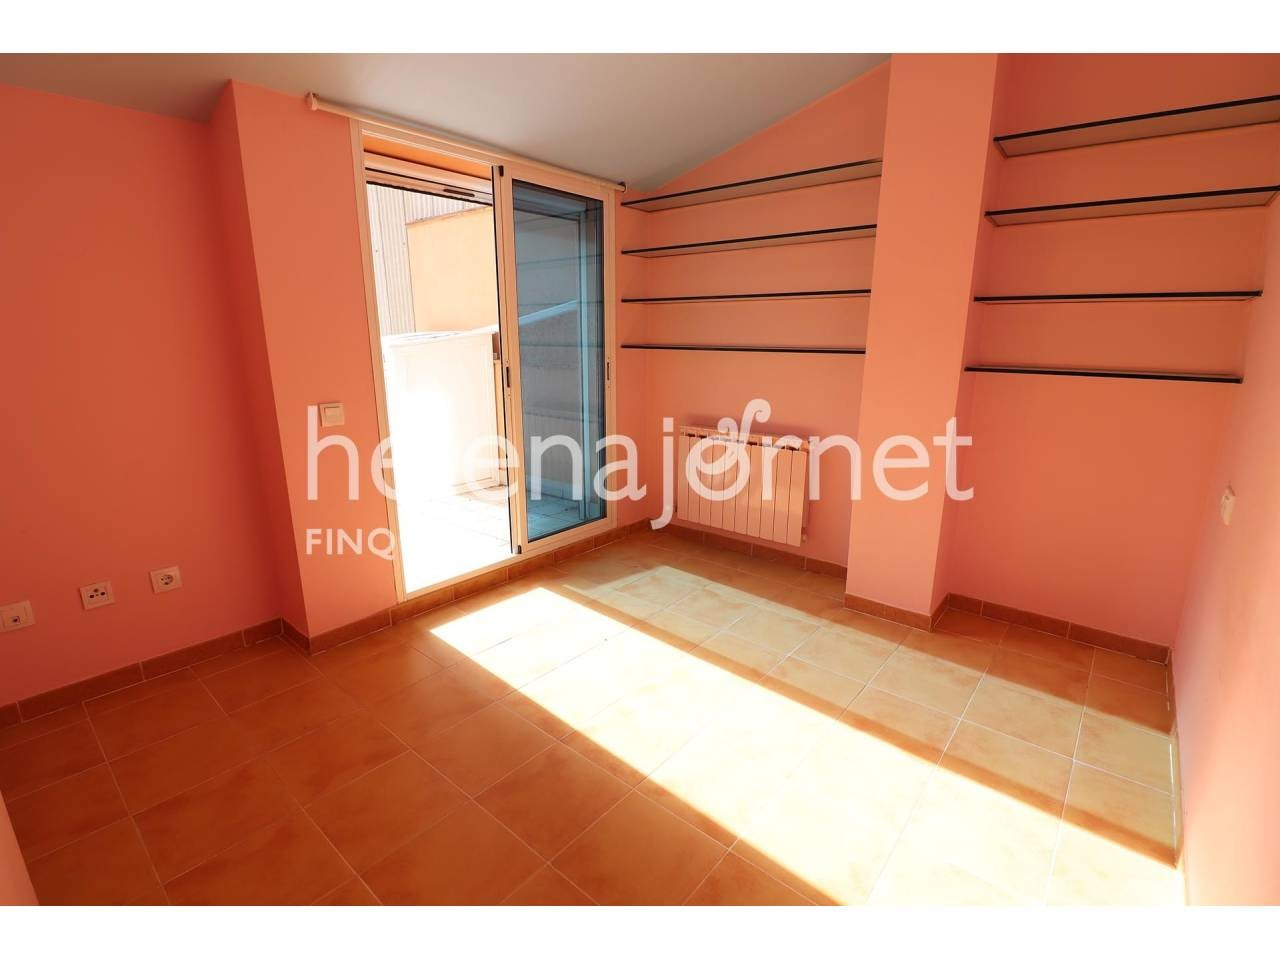 Duplex in second line of the beach of Sant Antoni de Calonge, with private parking place  - 1120